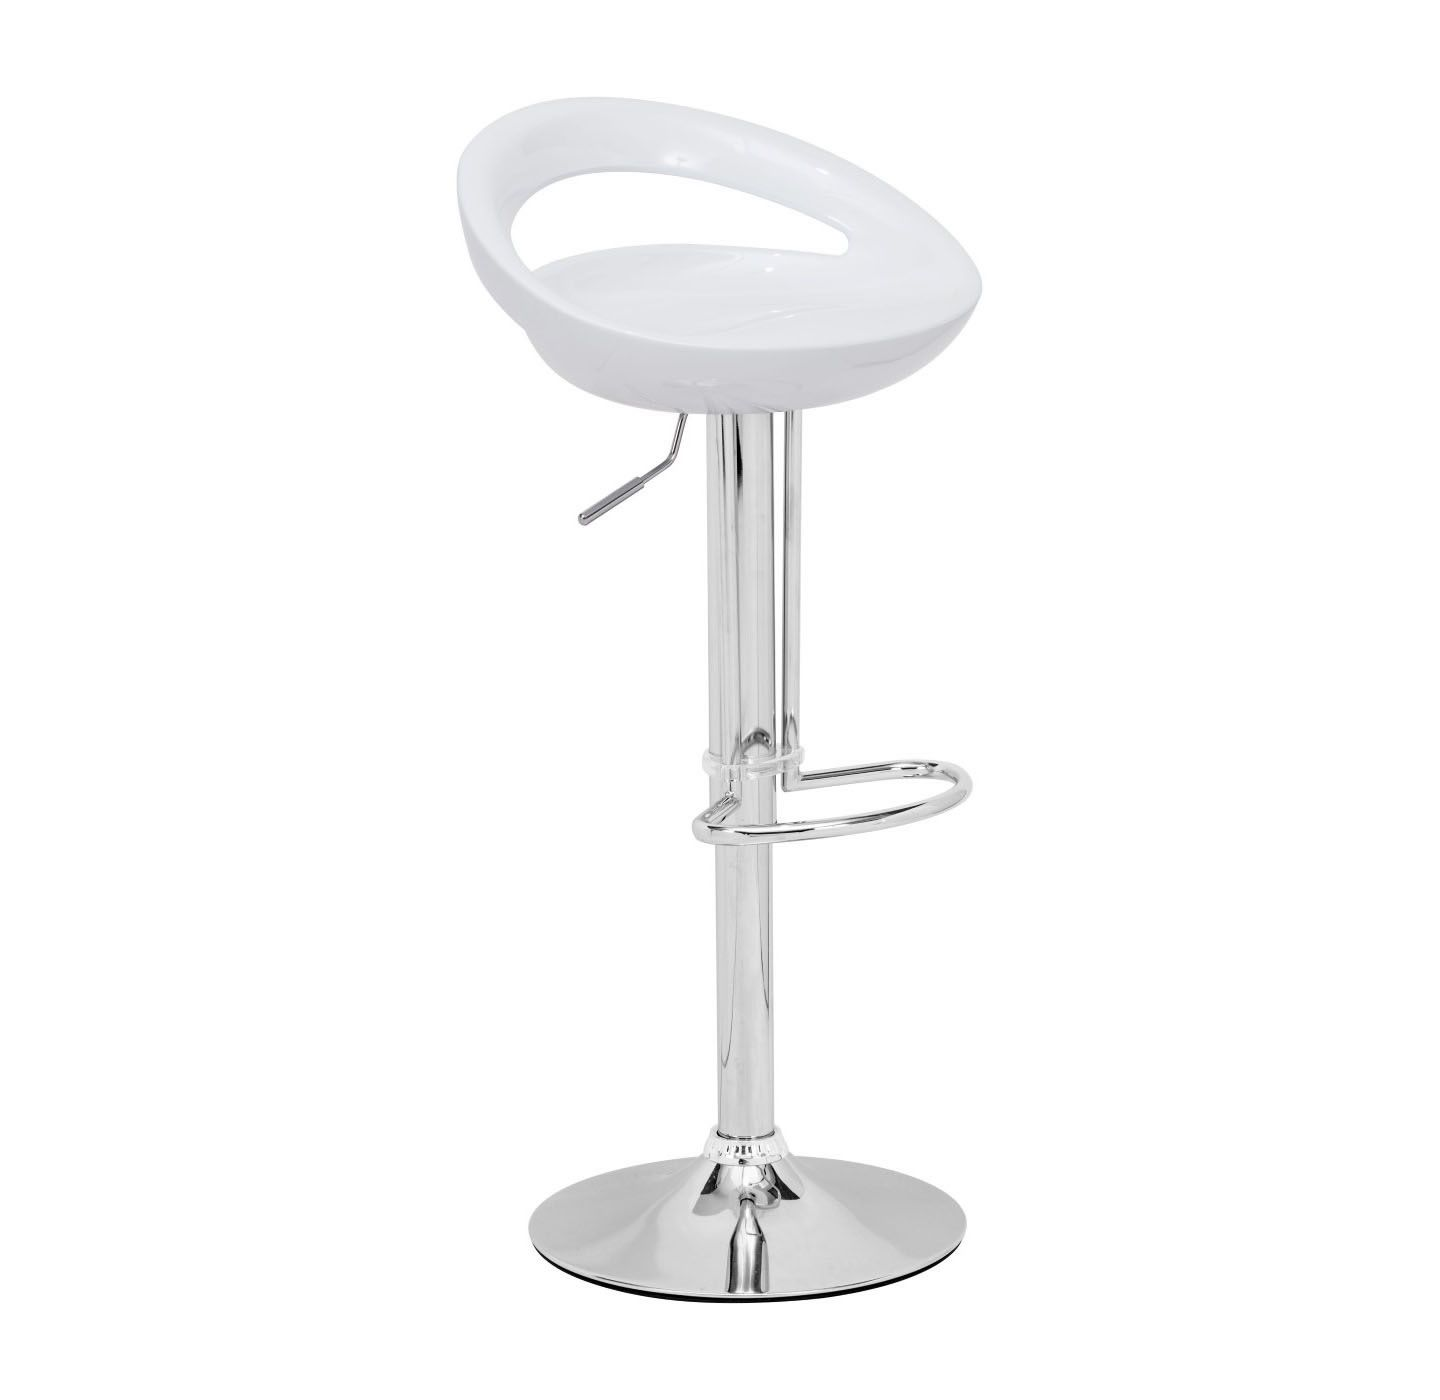 Smiling and laughing, the white Tickle barstool has a sculpted ergonomic seat made of ABS plastic. This stool is adjustable from counter to bar height with a chrome steel base and footrest.